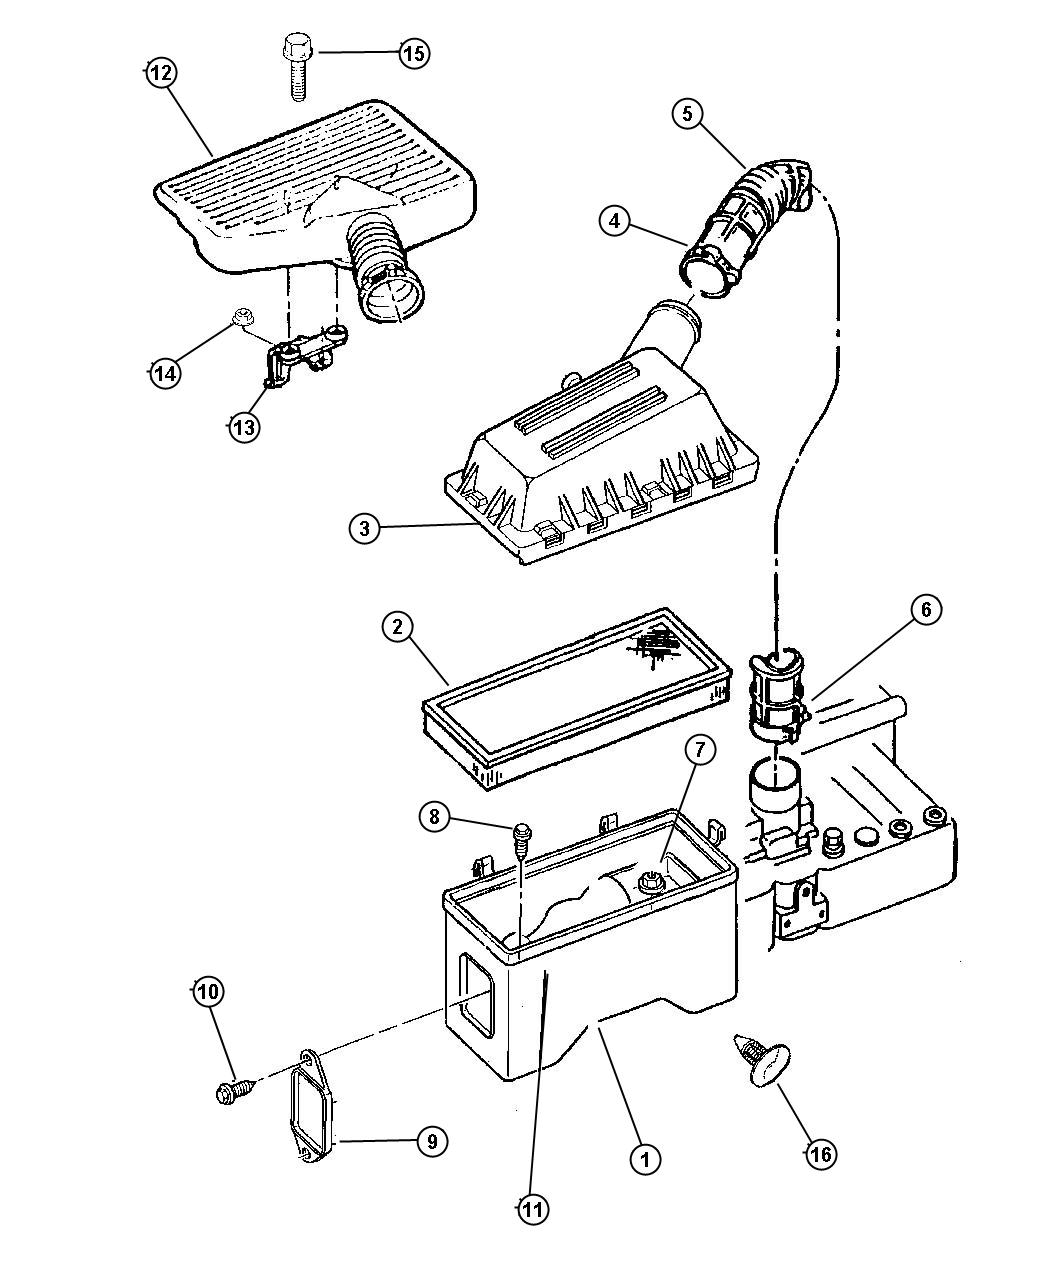 Chrysler Used For Bolt And Coned Washer Hex Head